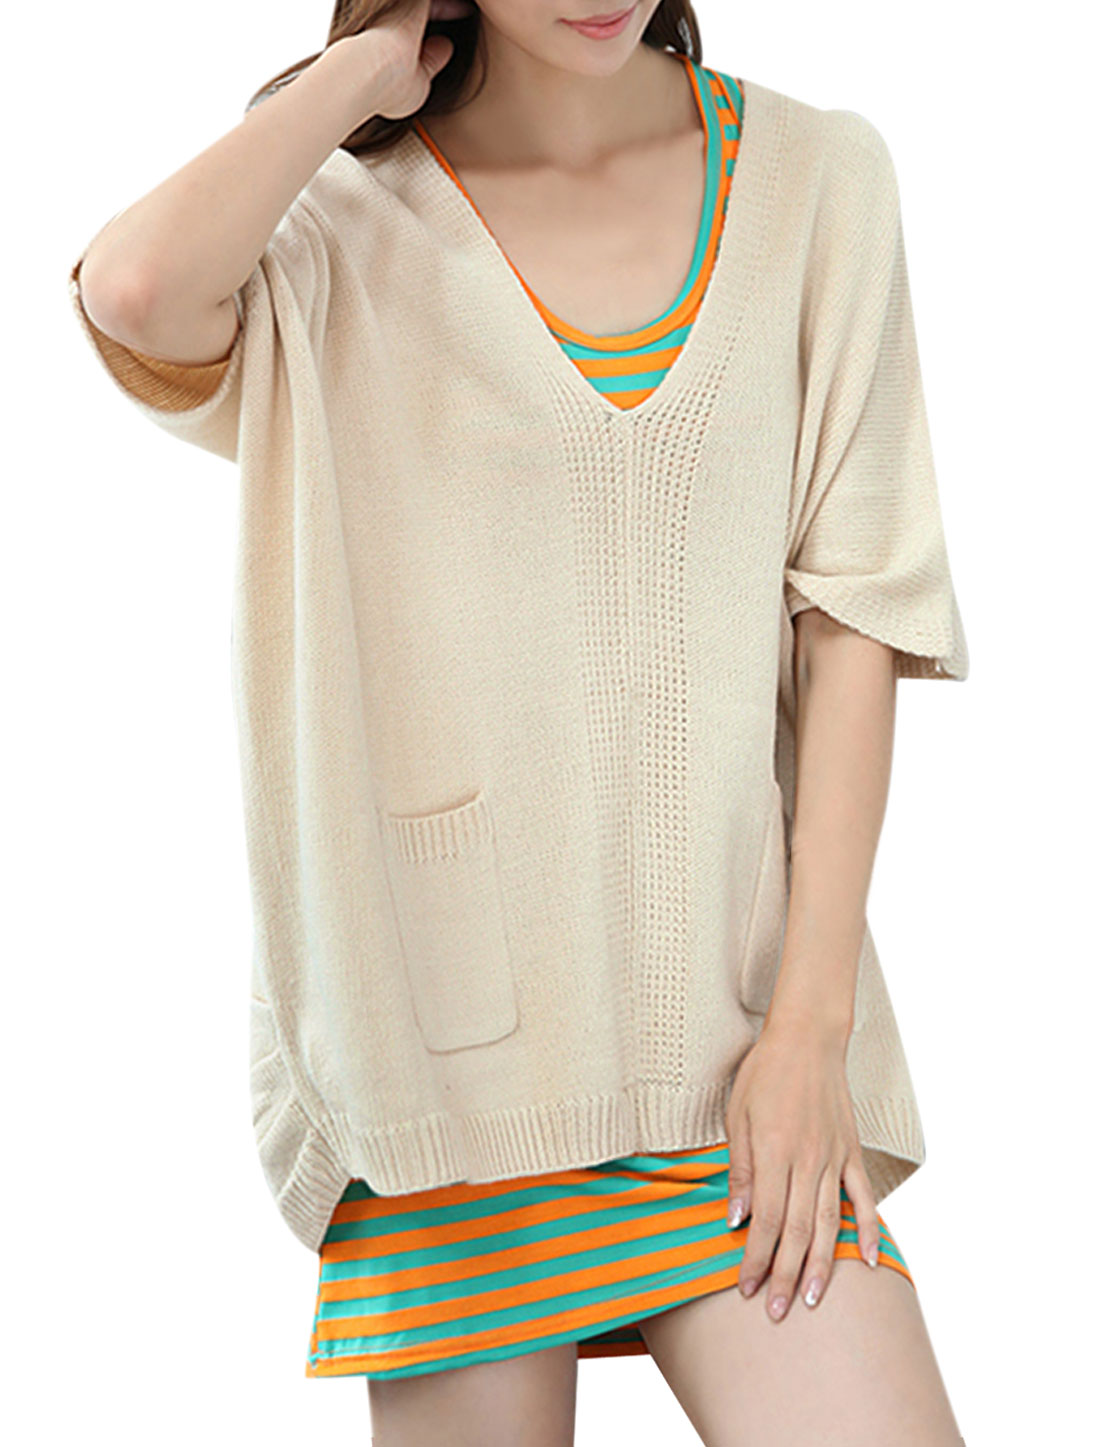 Women Pullover Raglan Sleeve Pockets Below Sweatercoat Beige L